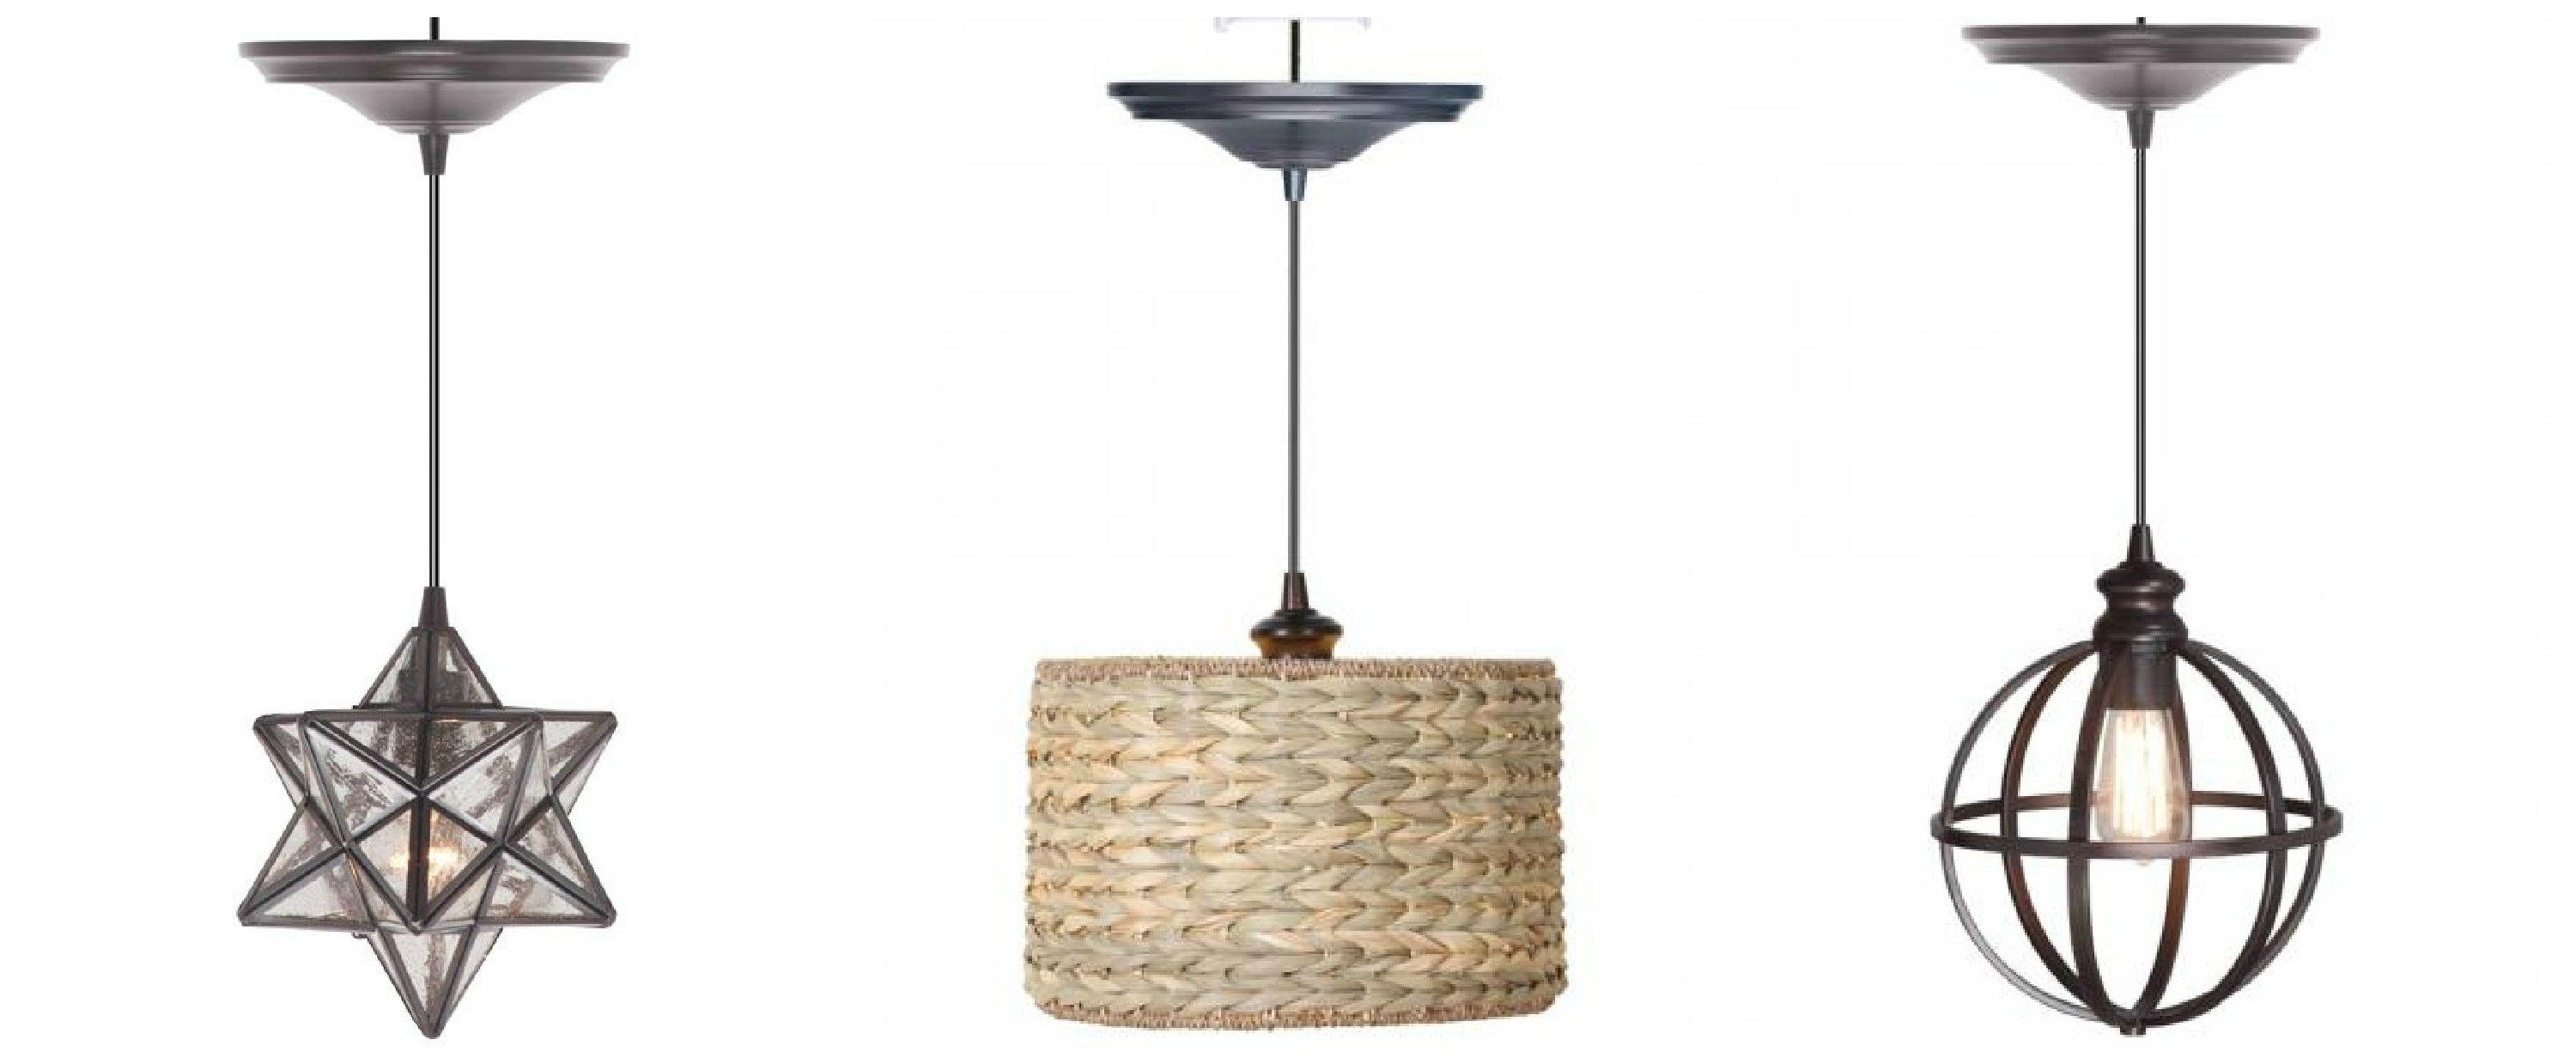 Modern Rustic Outdoor Lighting At Home Depot Pertaining To Trendy Chandeliers Design : Awesome Coach Lights Home Depot Residential Led (View 19 of 20)